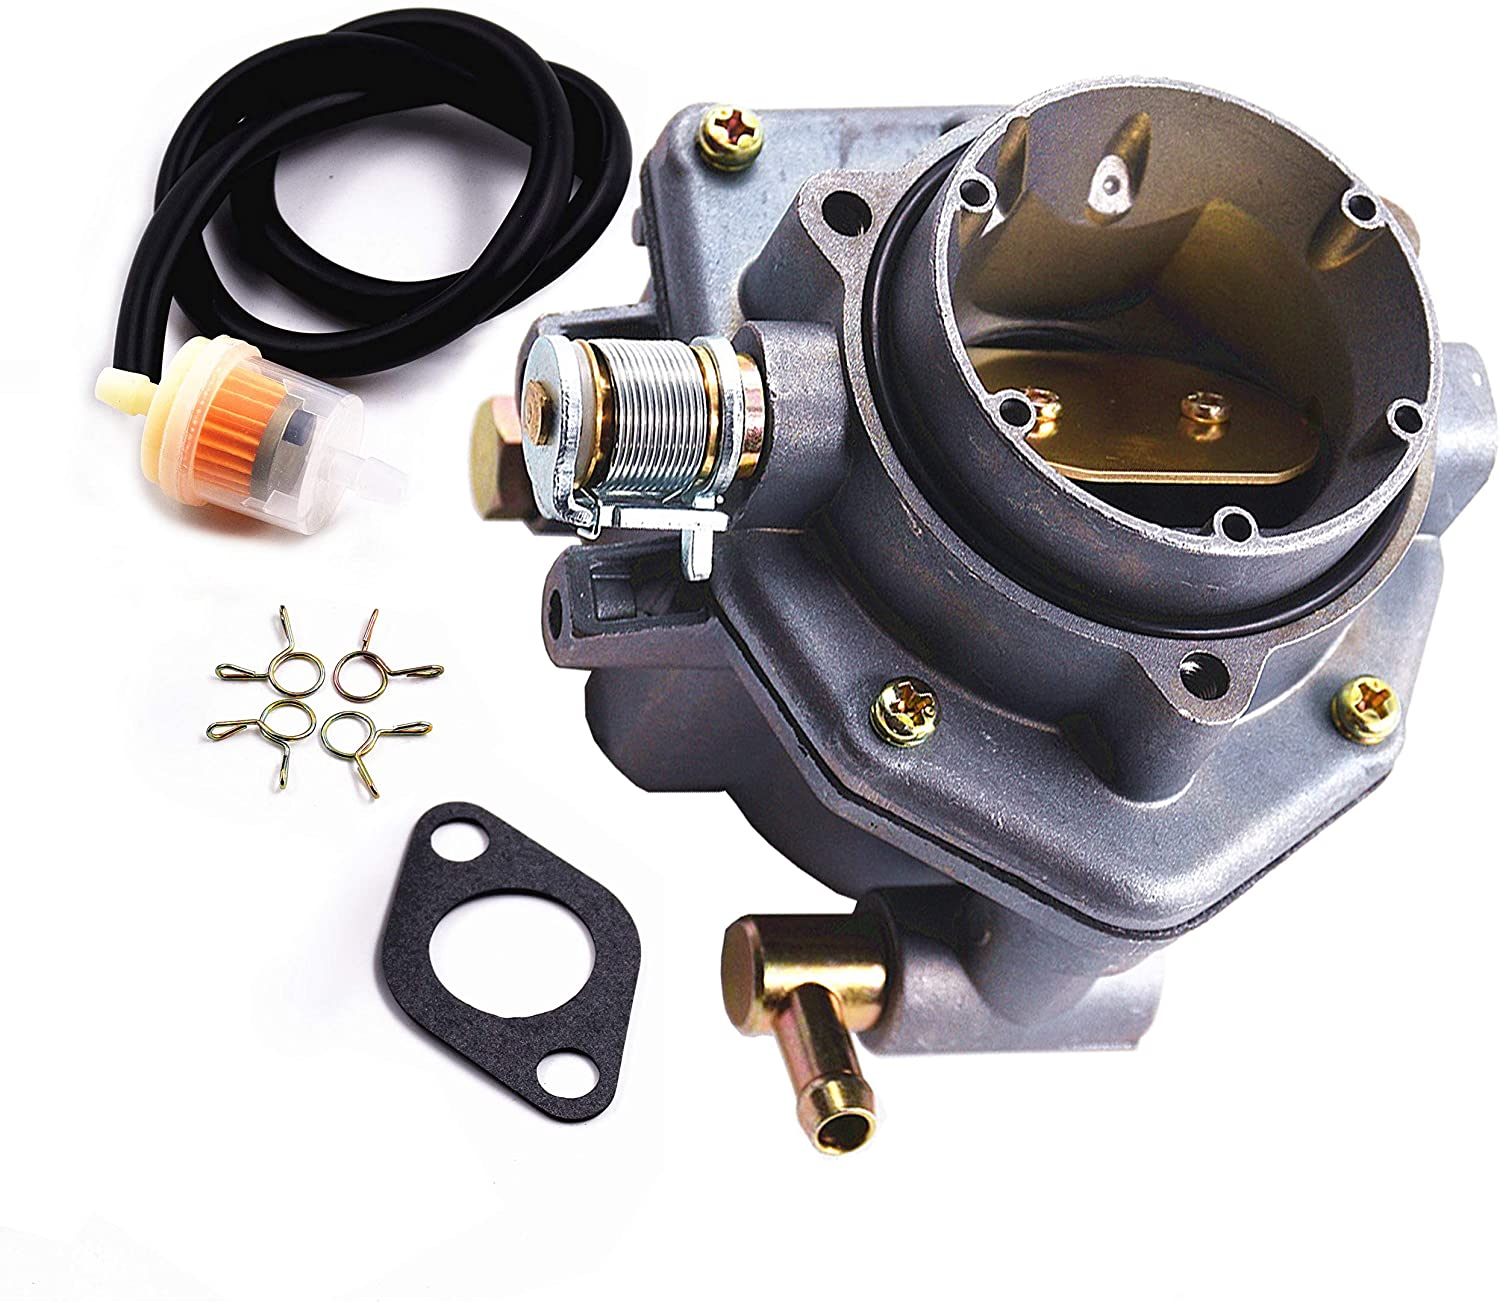 Carbman 146-0479 Carburetor for ONAN NOS B48G P220G B48M 146-0496 146-0414 20 hp Performer